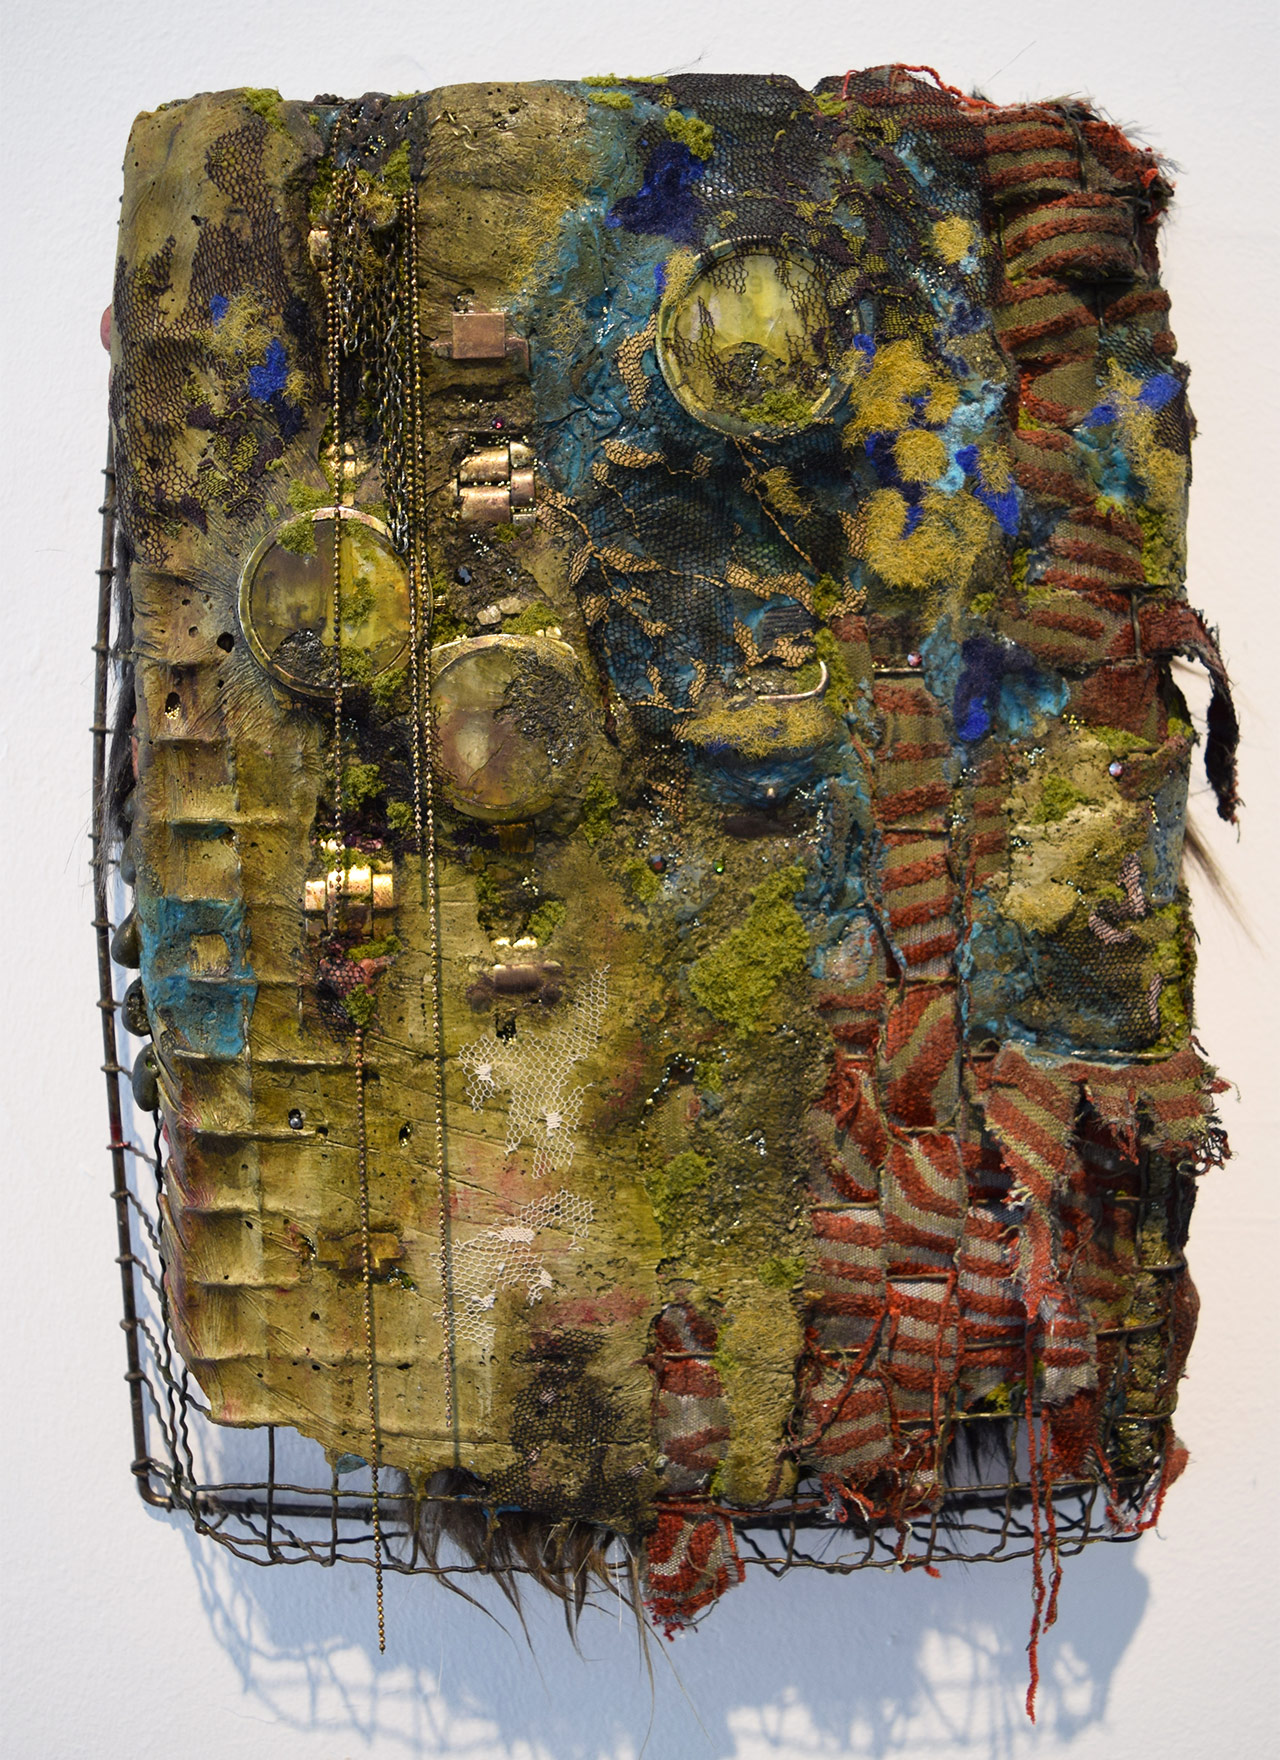 """Lina Puerta, """"Untitled (basket and watches)"""" (2014)"""